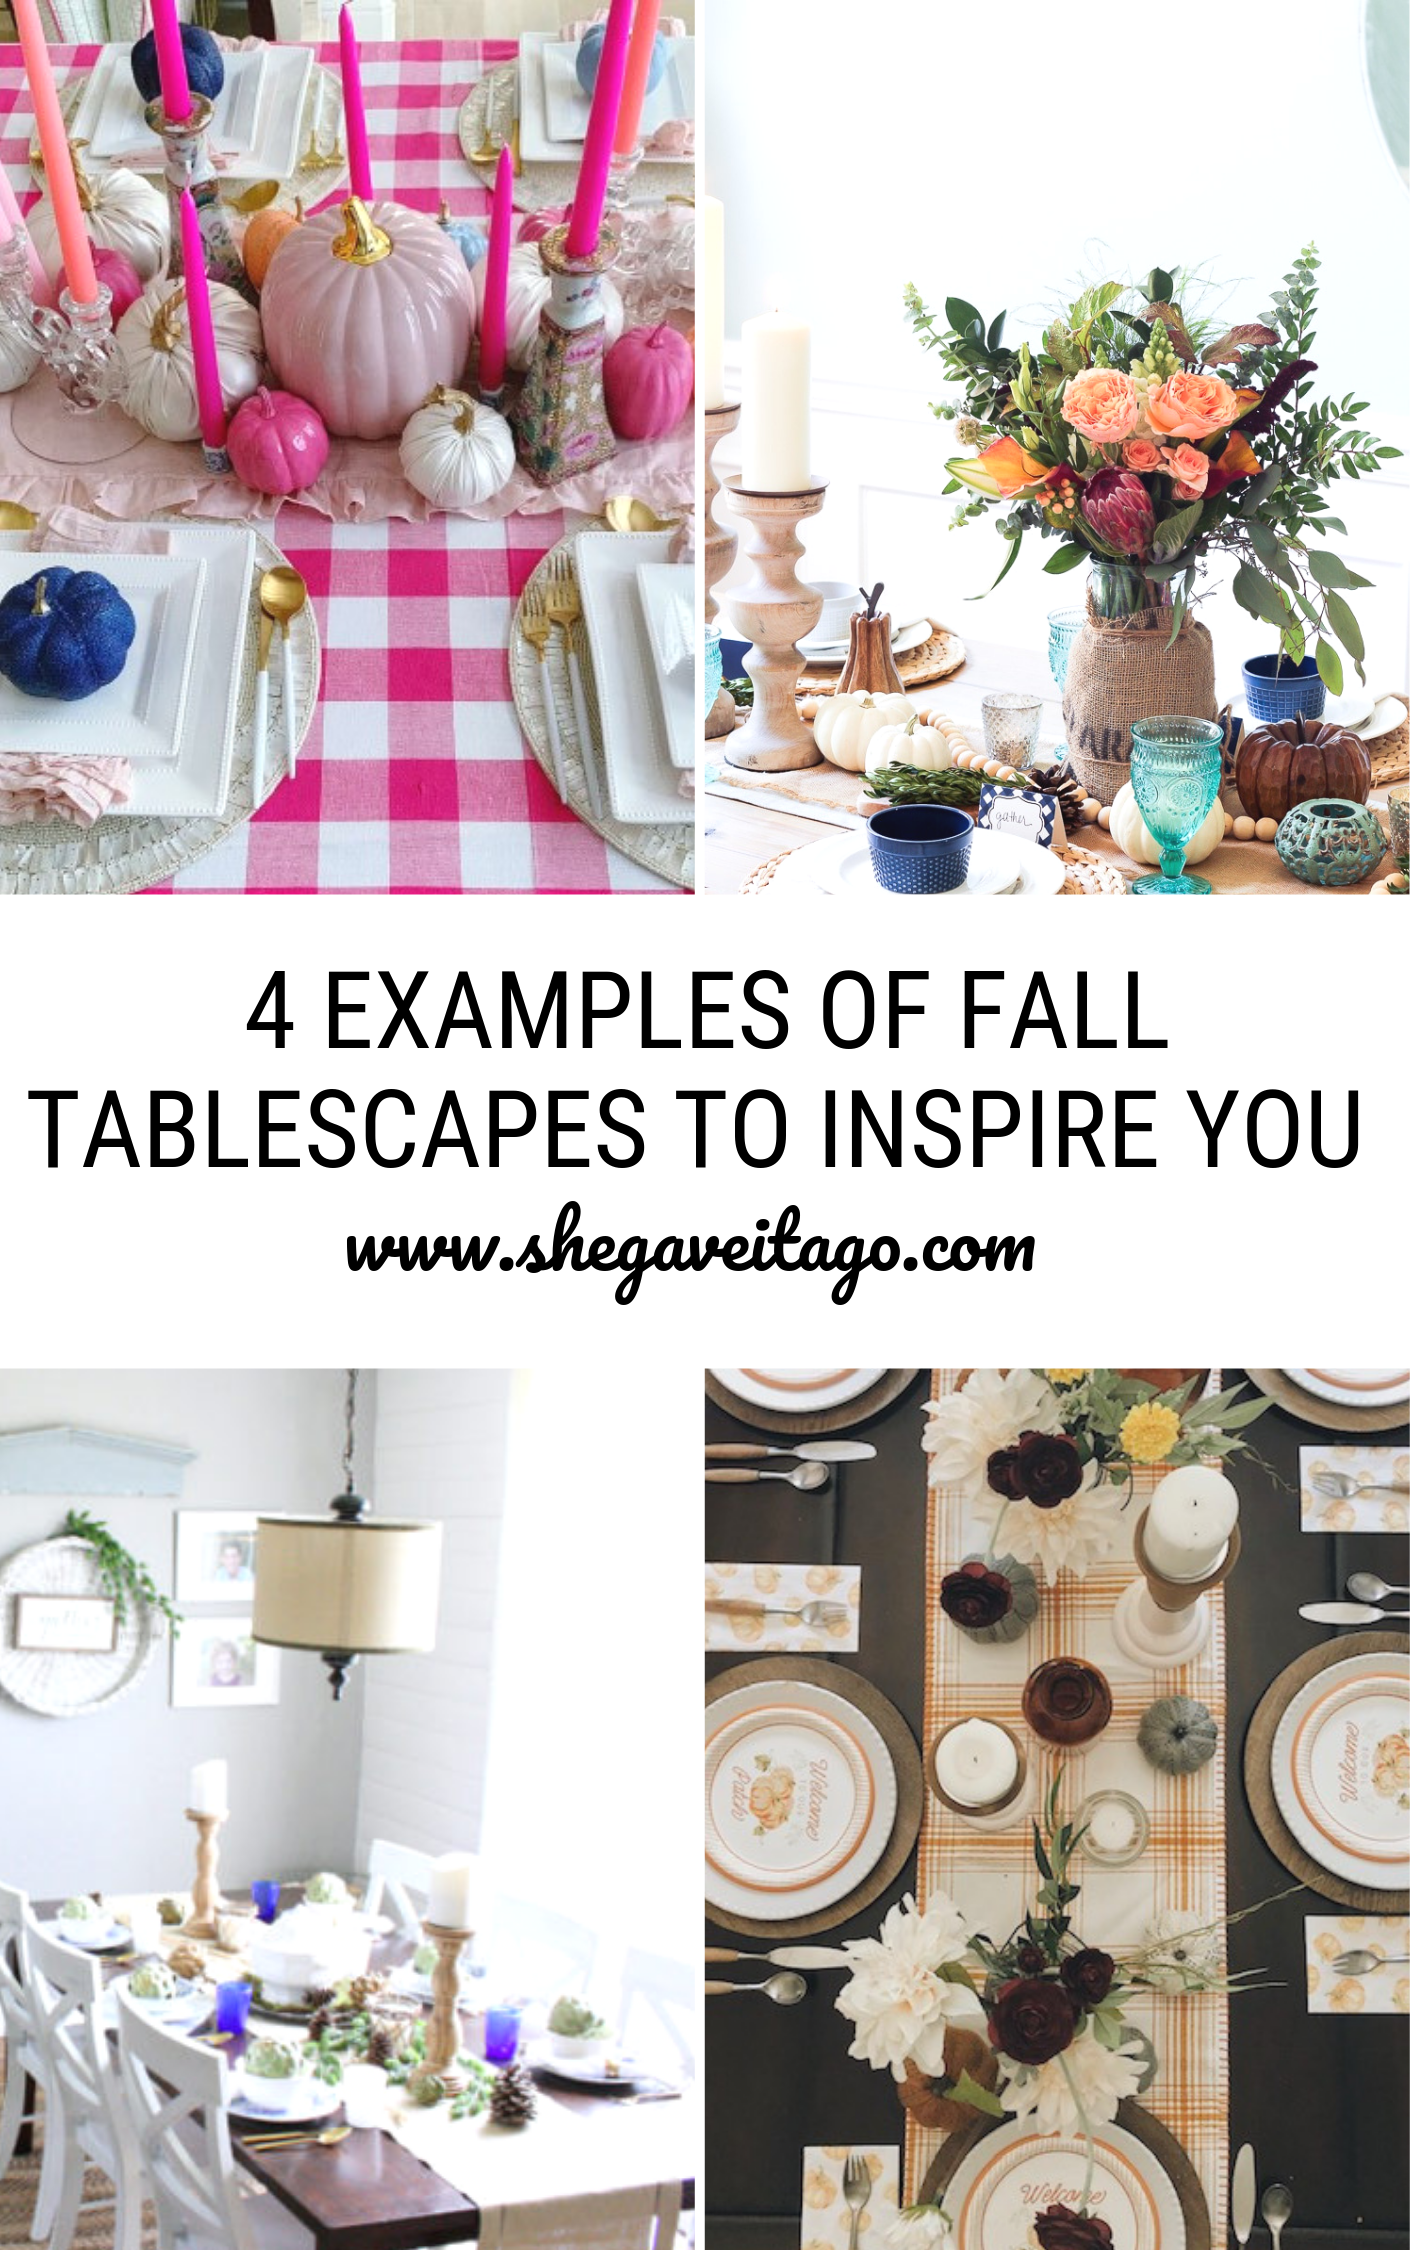 4 Examples Of Fall Tablescapes To Inspire You.png